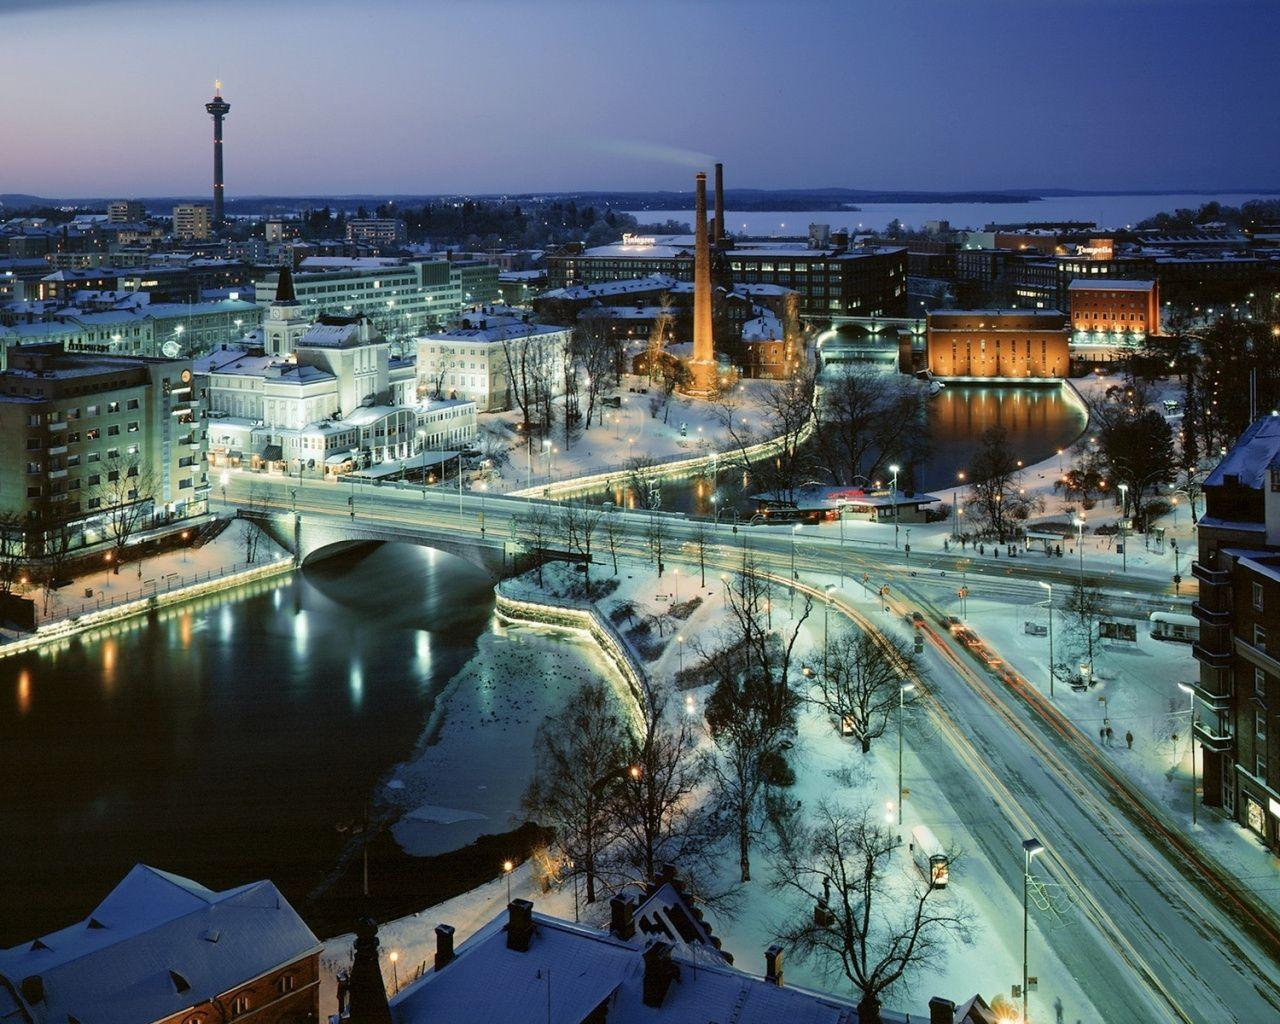 Download 1280x1024 Wallpapers Trade, Helsinki, Tampere, Kajaani